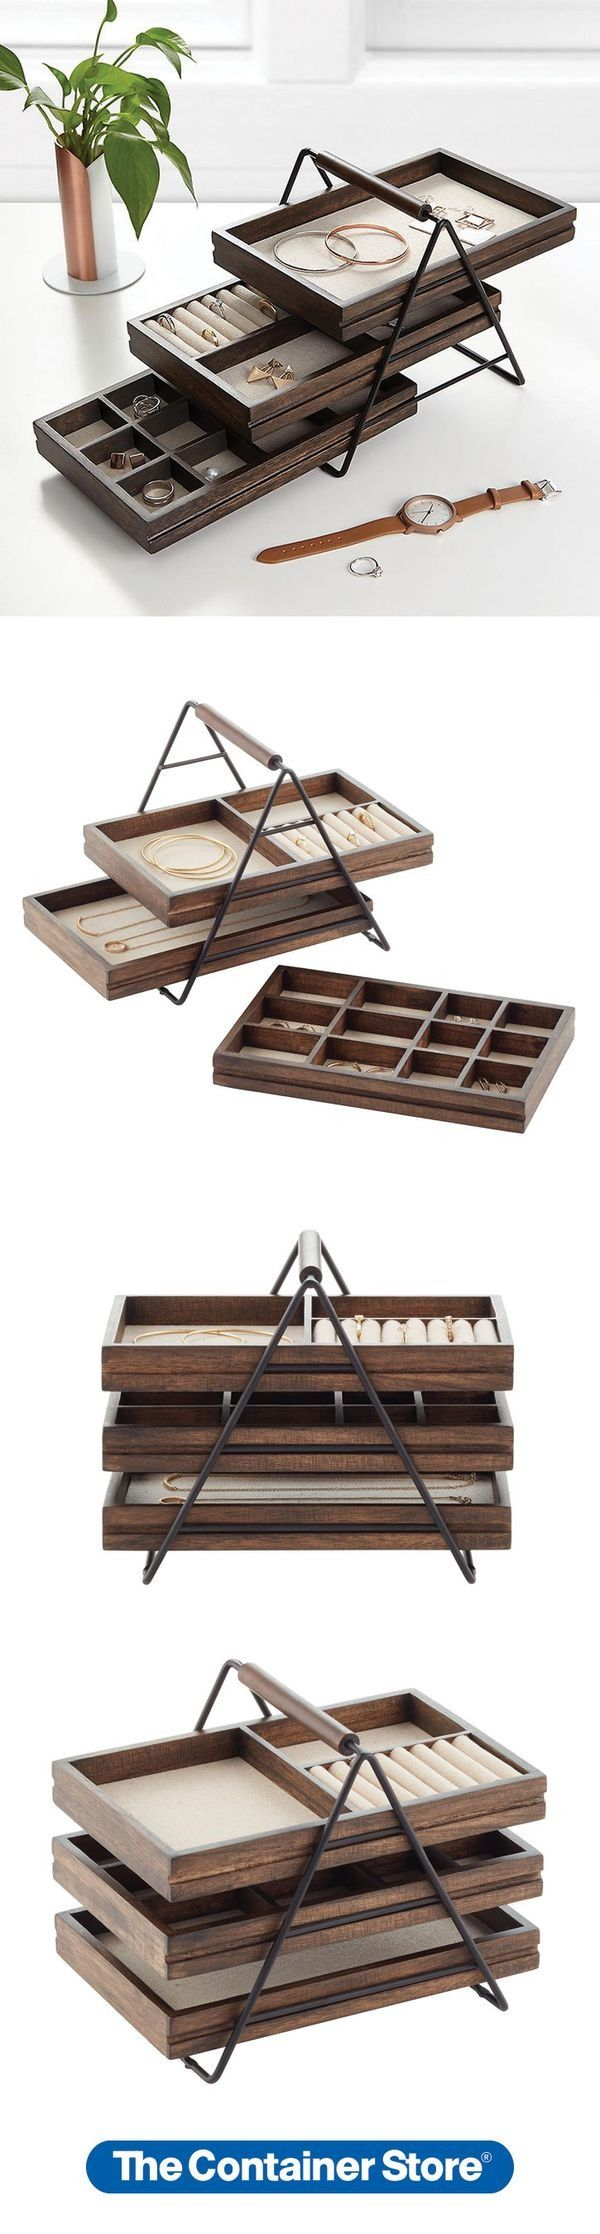 Thoughtfully designed to take up minimal space on a dresser top, the Terrace Jewelry Organizer by Umbra actually hides an impressive amount of storage space. Its three wooden tiers slide out, revealing trays for specialized organization: a divided bottom tray for earrings, middle tray with rings rolls and compartment for chains or eyeglasses, and a top tray for necklaces and larger accessories. Each is open for easy access and linen-lined to protect contents.